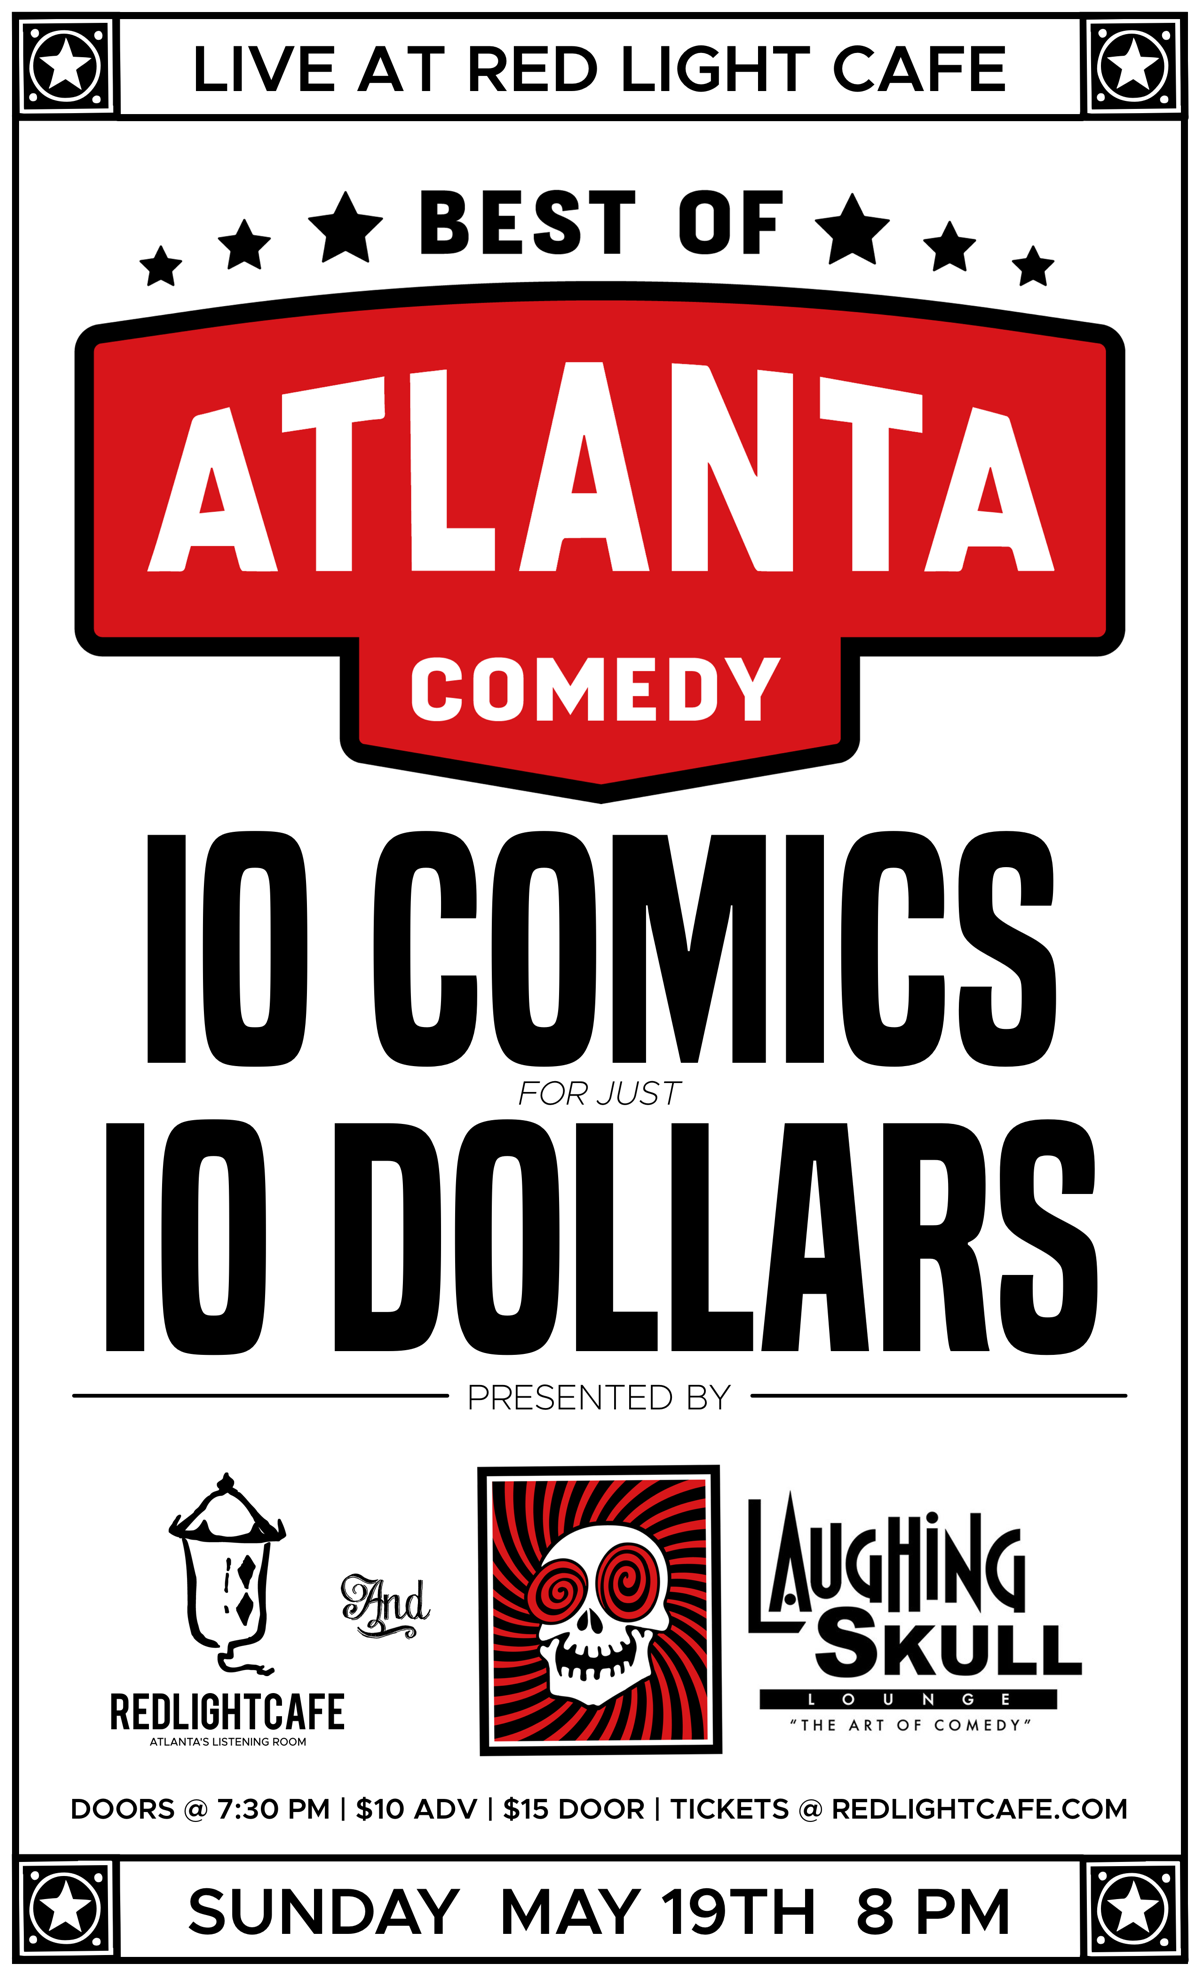 Best of Atlanta Comedy at Red Light Café presented by Laughing Skull Lounge — May 19, 2019 — Red Light Café, Atlanta, GA